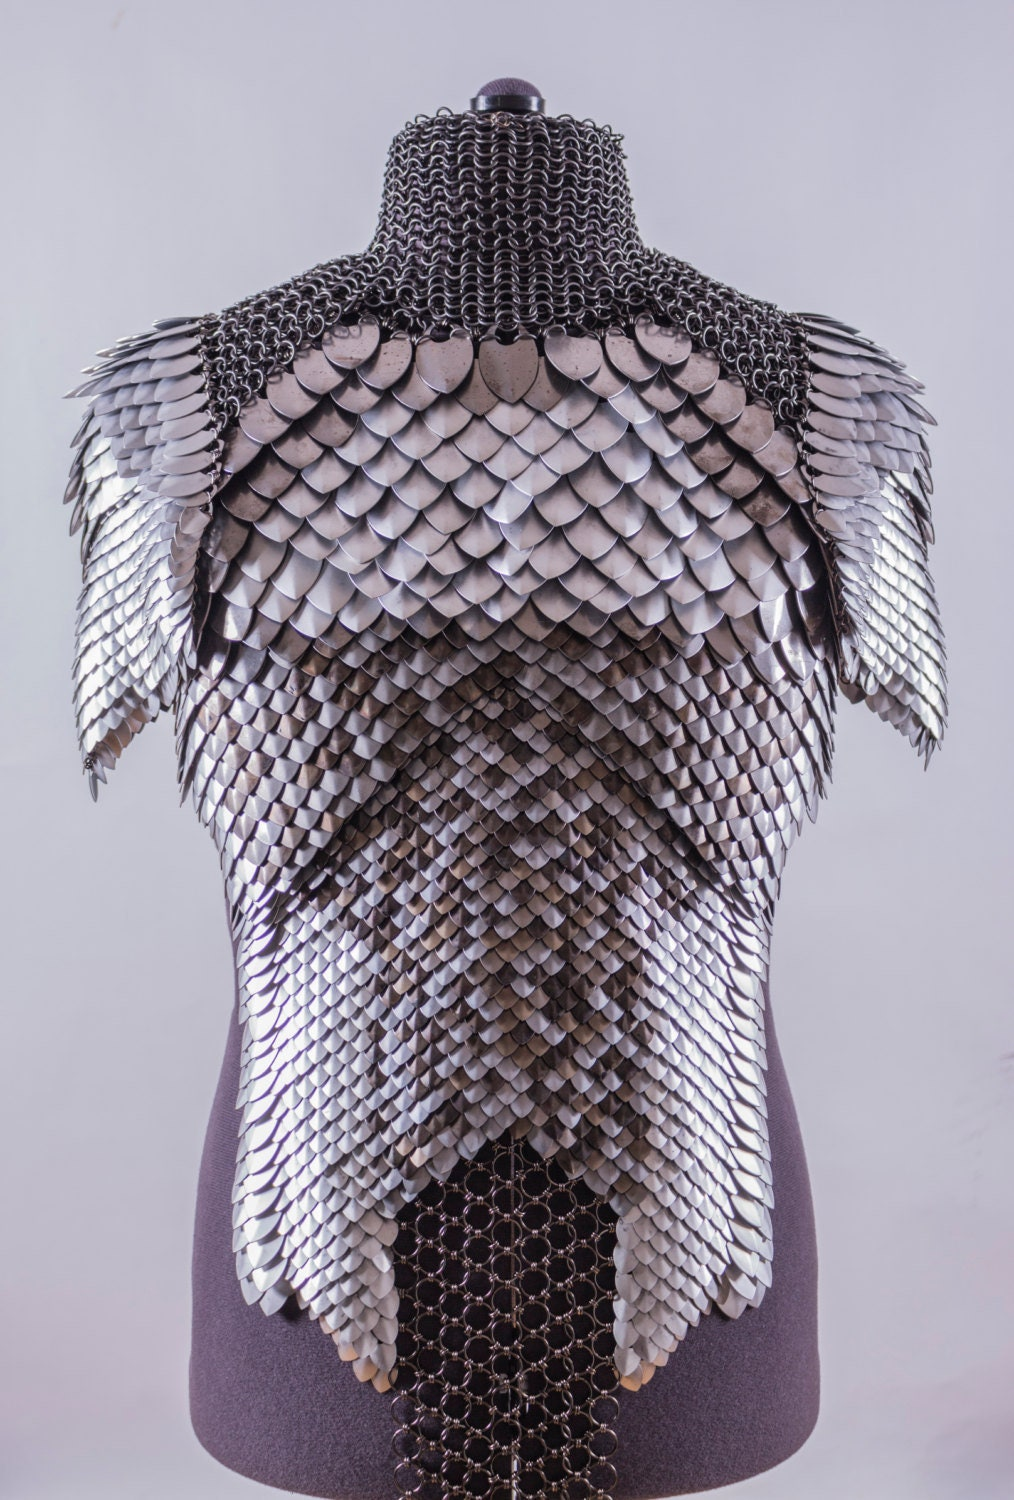 Chainmail & Scale Mail Top With Shoulder Armor Costume